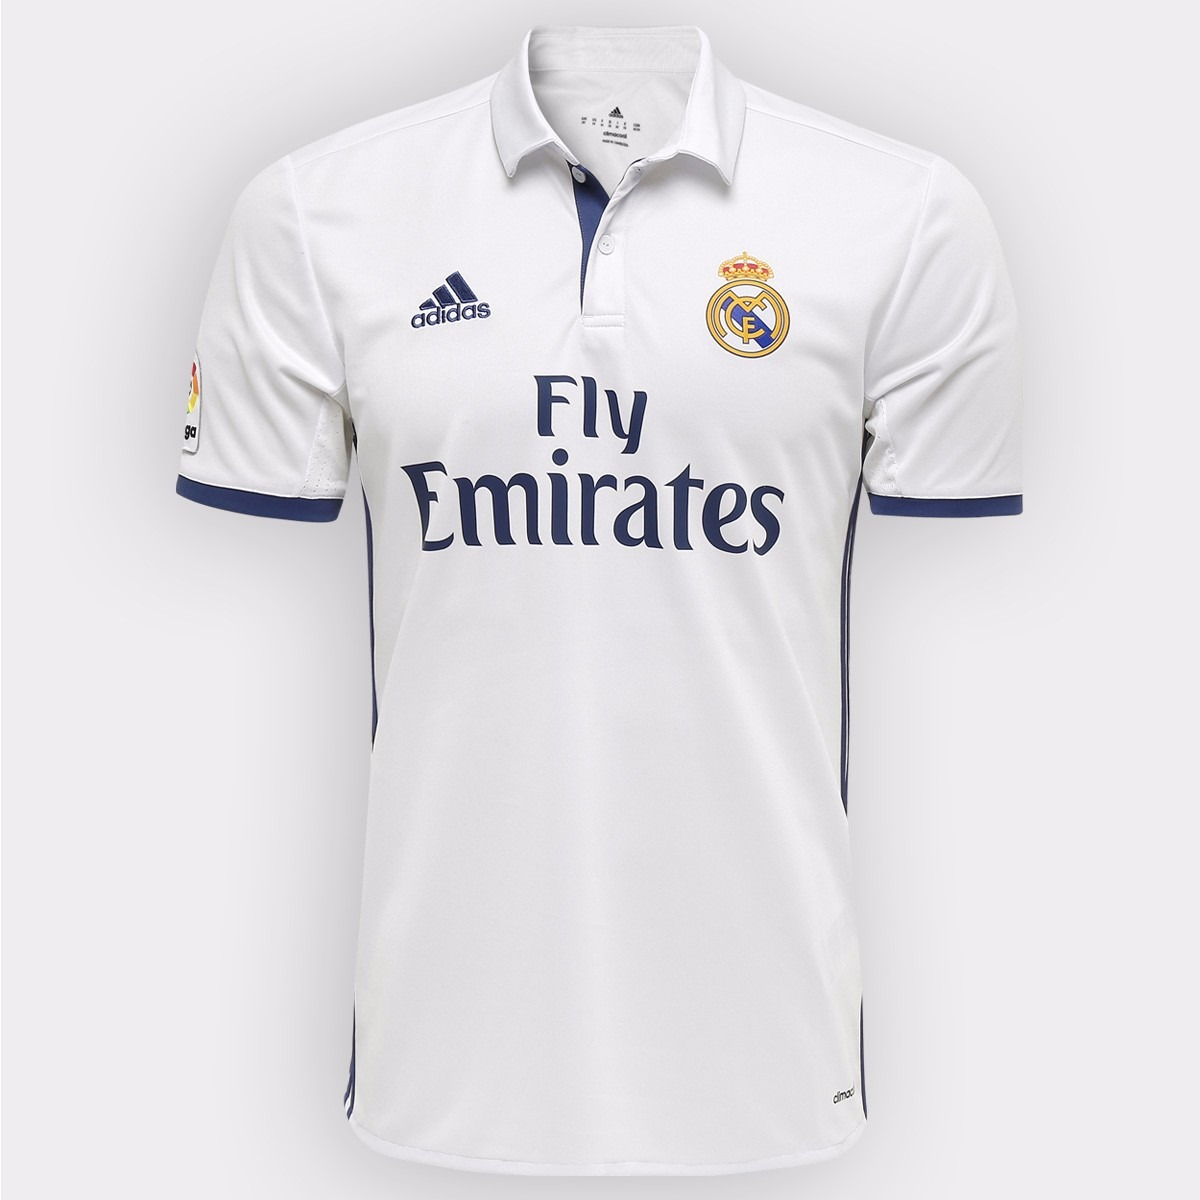 ad9790f06 Camisa adidas Real Madrid Home 16 17 - Easy Shopping - R  136